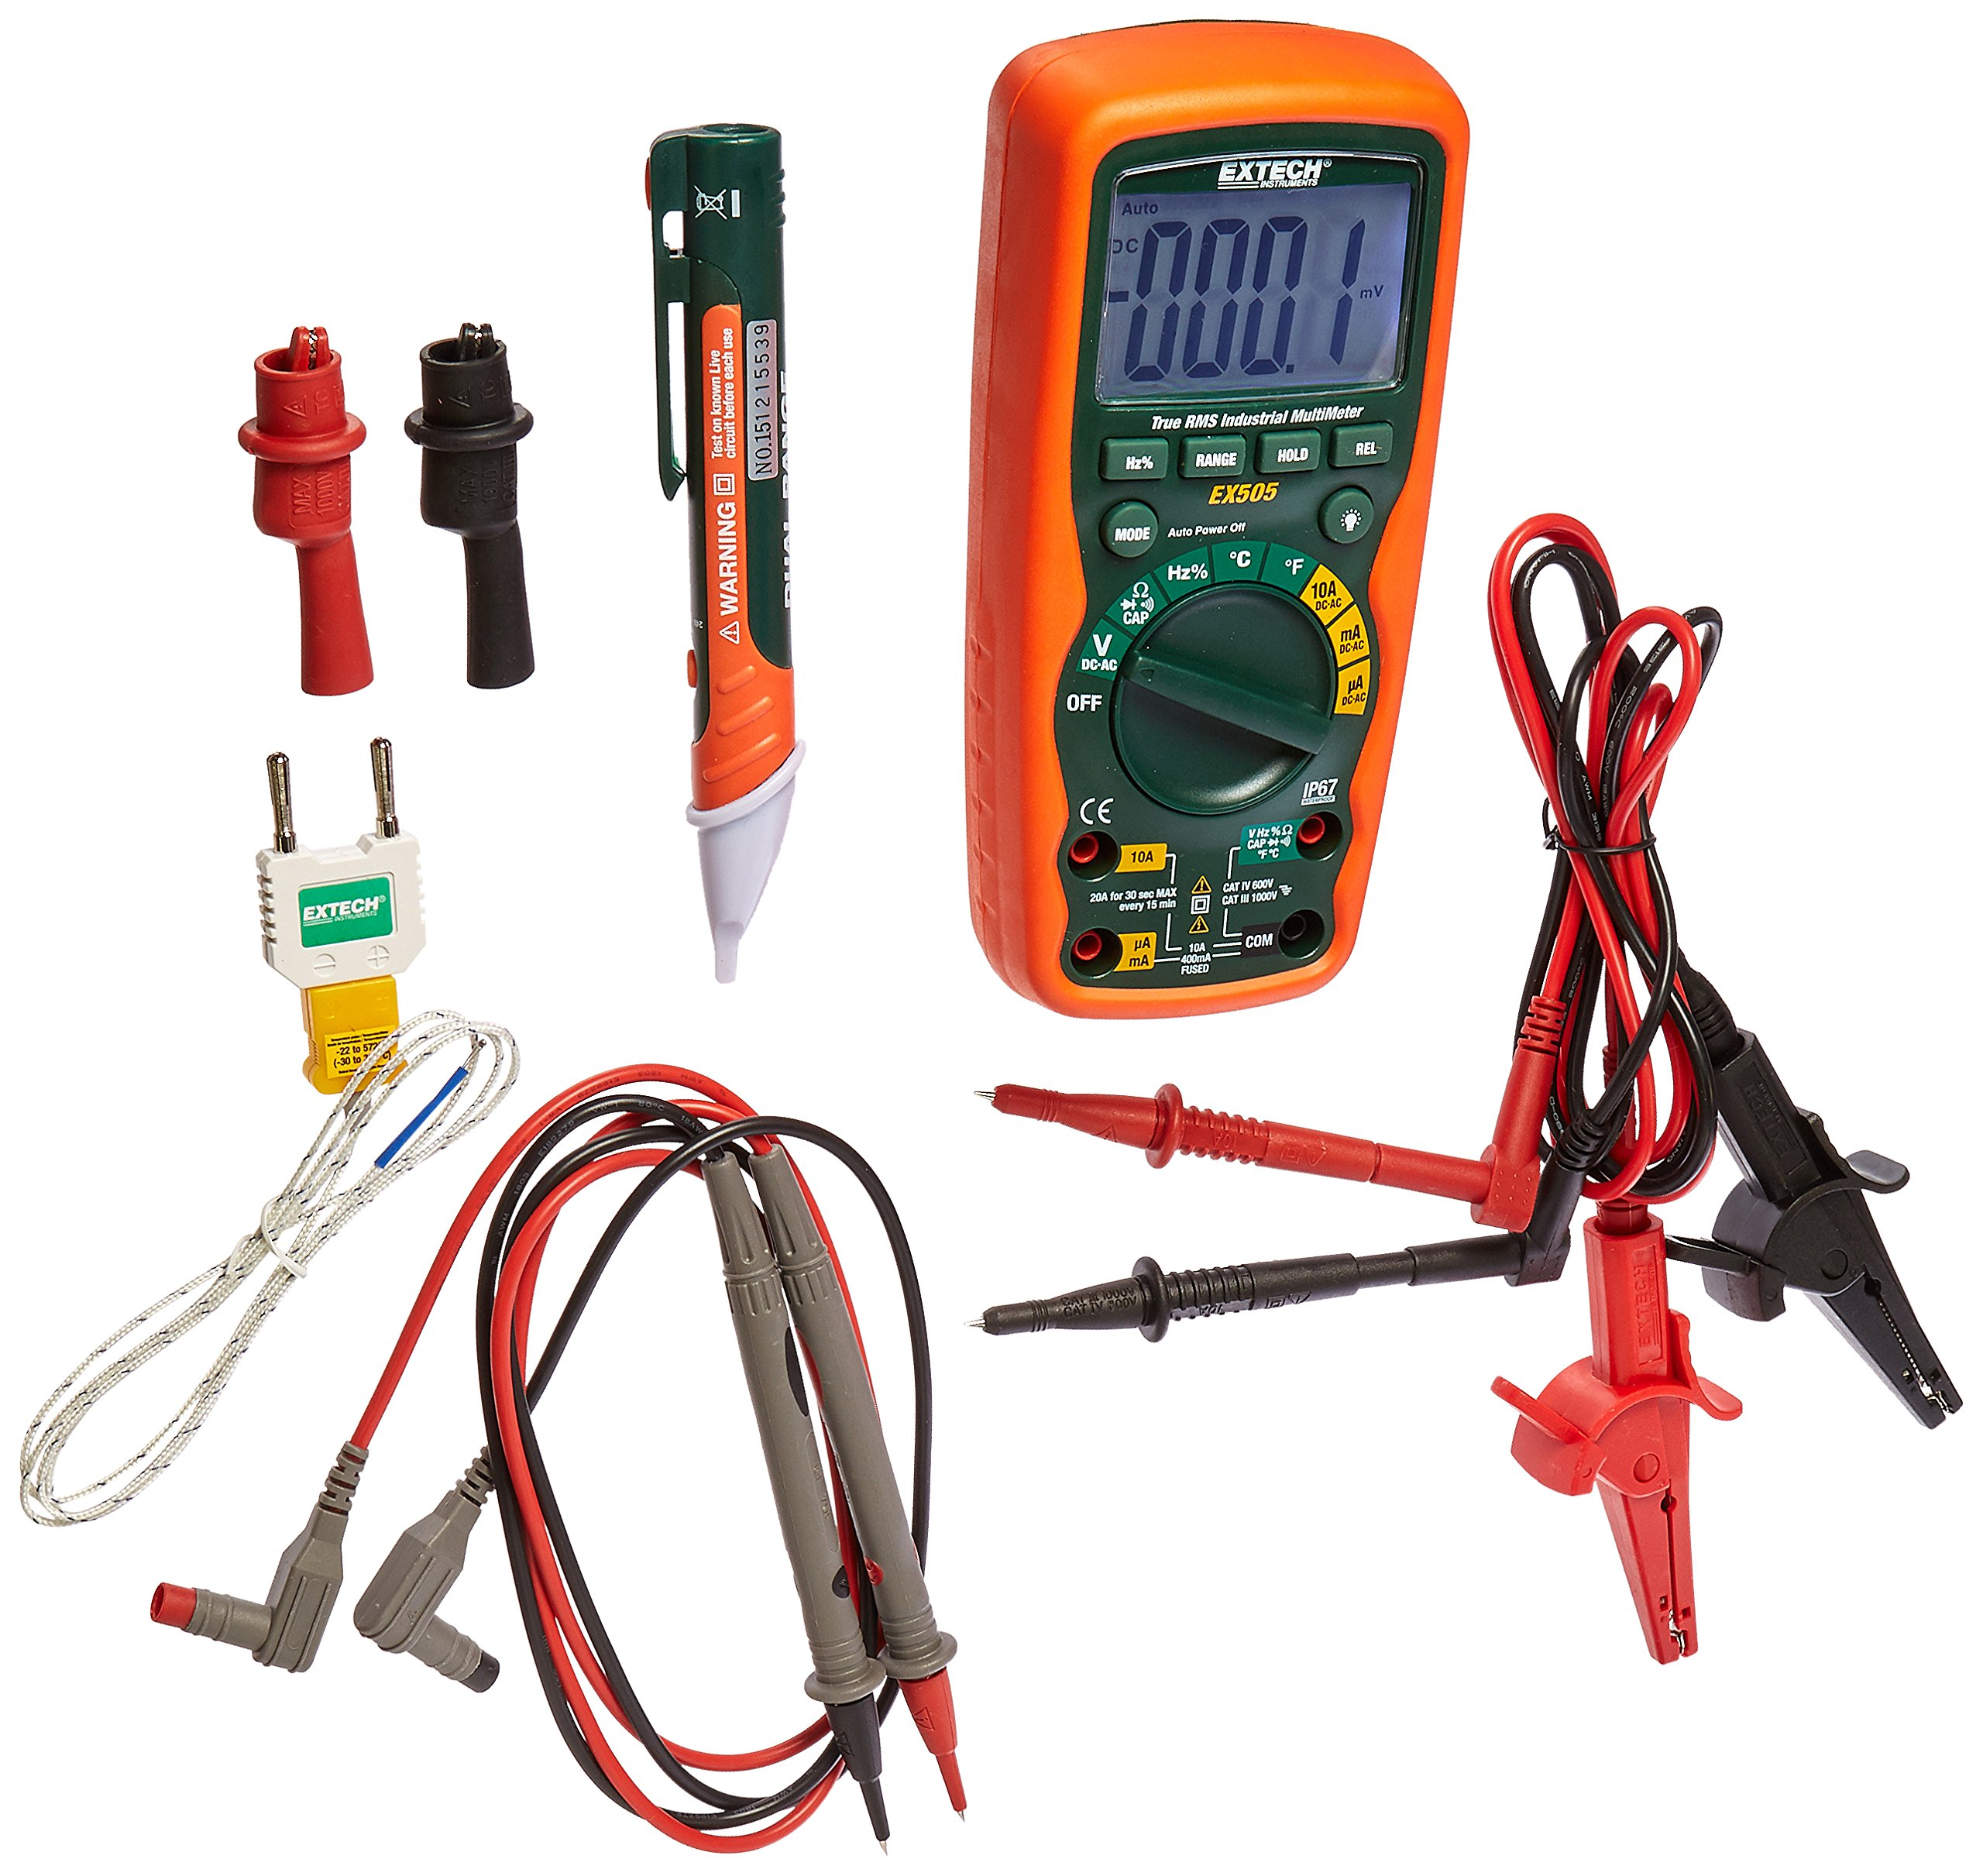 Extech EX505-K Heavy Duty Industrial Multimeter Kit by Extech